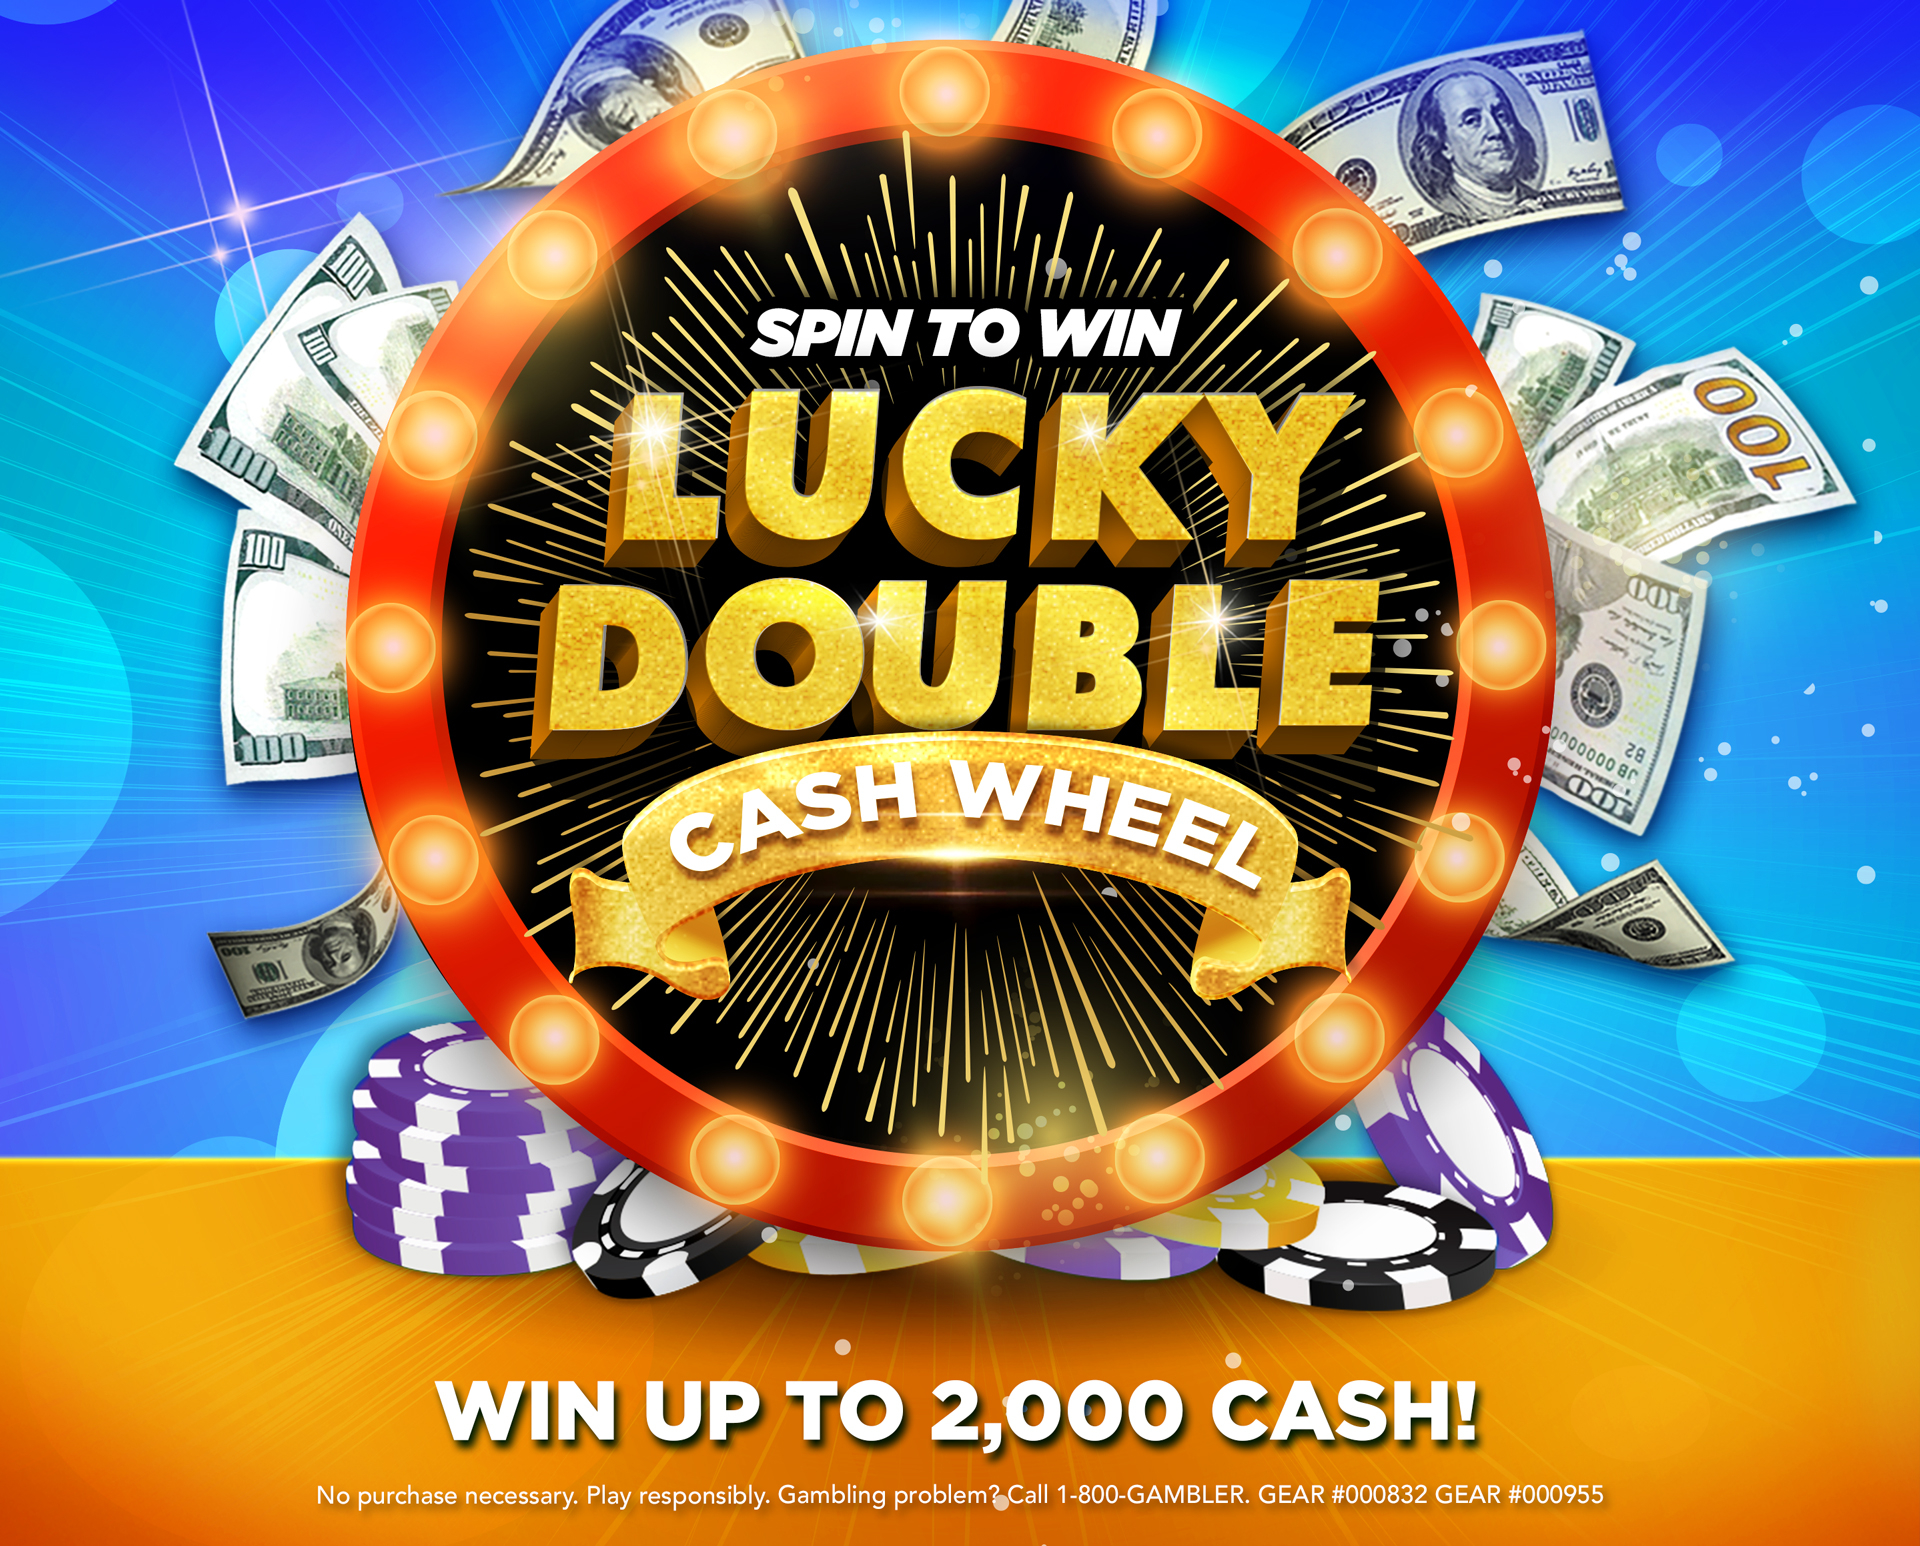 Casino fun: Win up to $2,000 CASH! Earn tickets to spin through our qualifying hands.